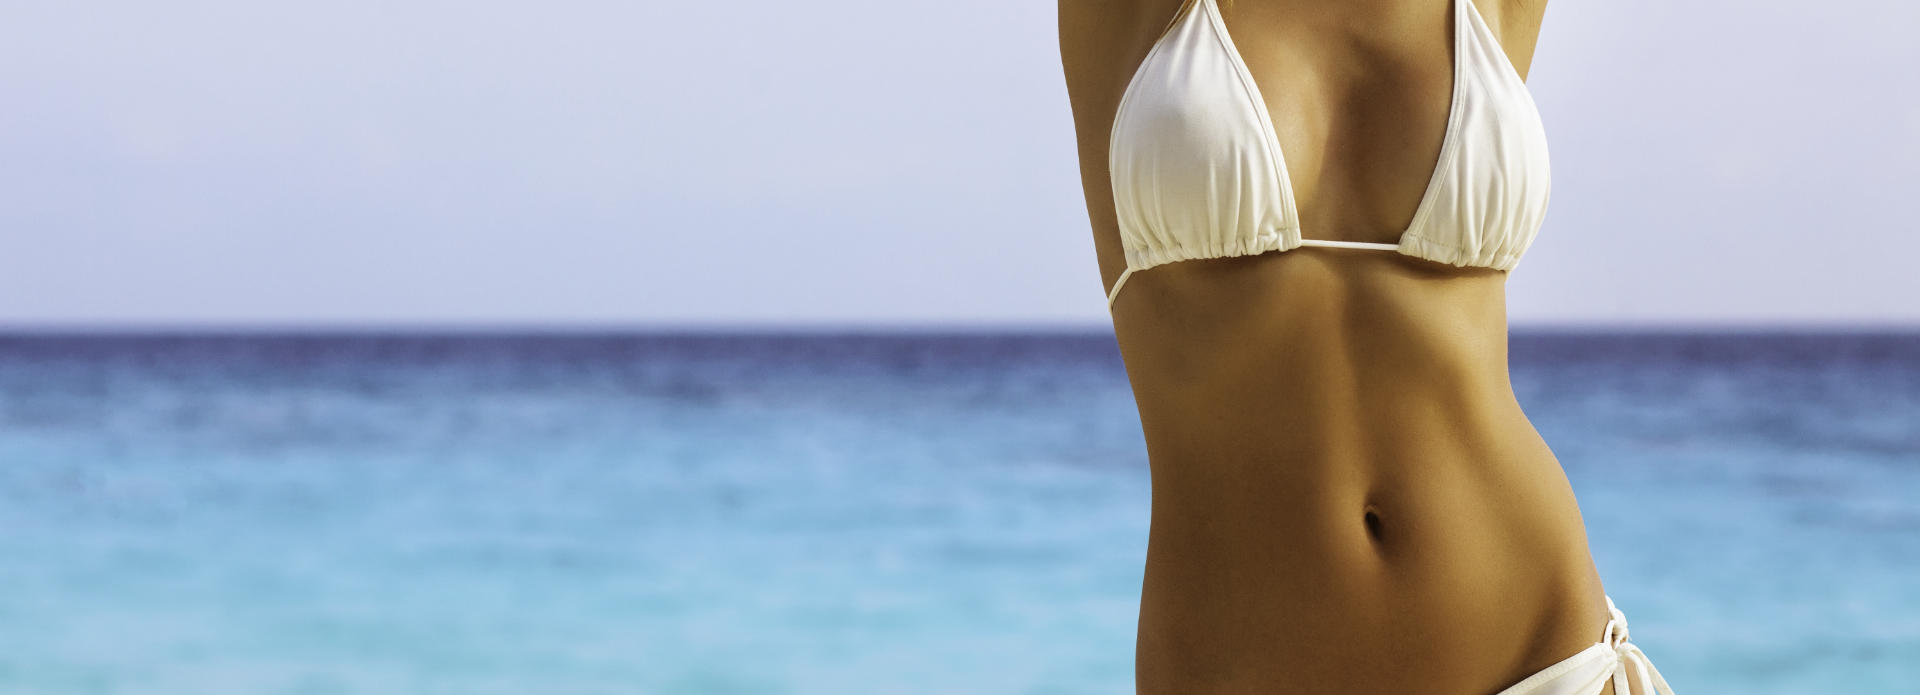 Slim woman after Coolscuplting treatment wearing bikini while on the beach.